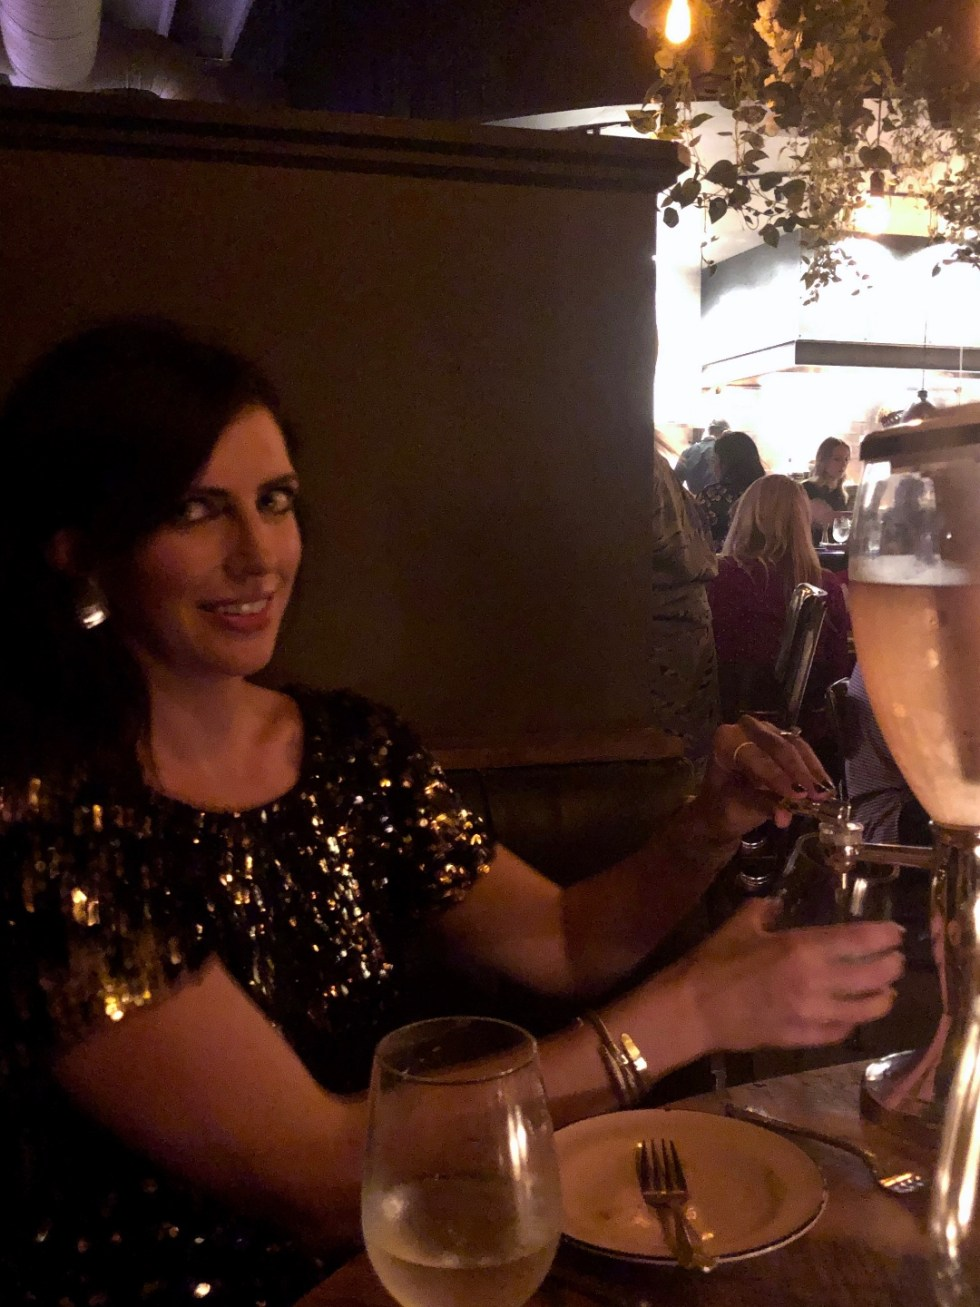 20 Moments I am Grateful for in 2020 - I'm Fixin' To - @imfixintoblog |Moments to be Grateful for by popular NC lifestyle blog, I'm Fixin' To: image of a woman wearing a sequin dress and filling her glass from a drink dispenser.